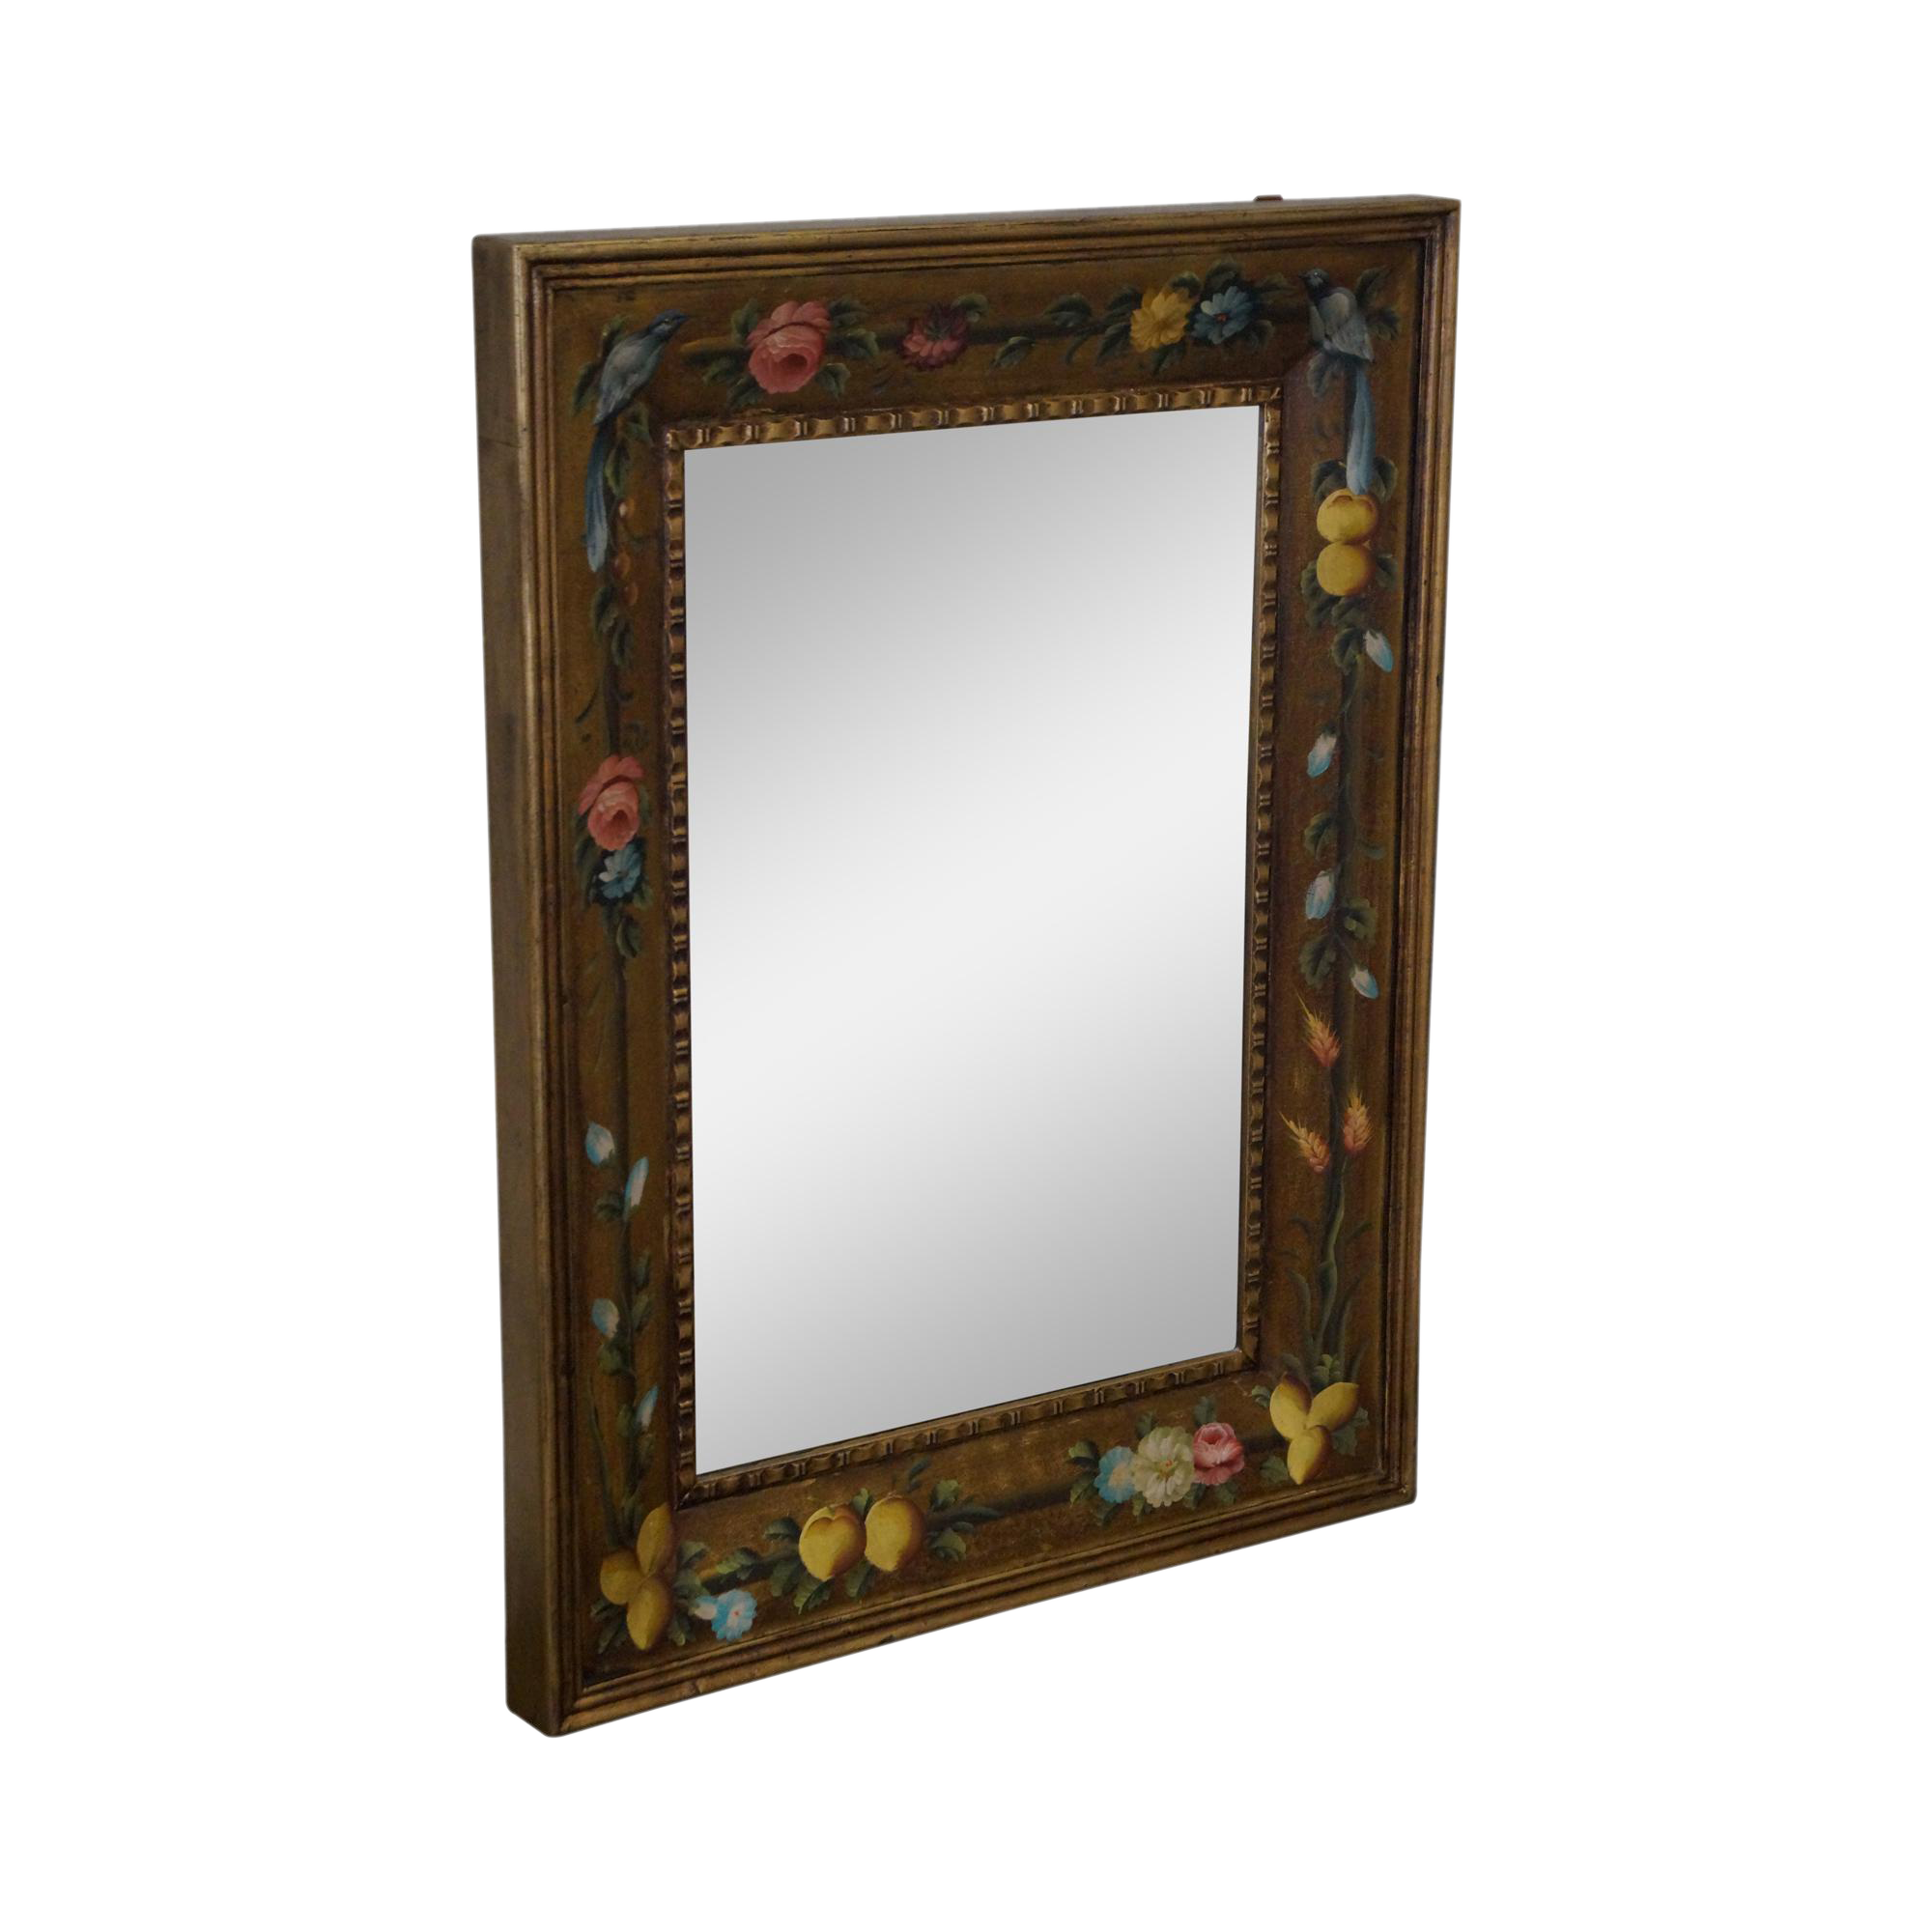 Floral Hand Painted Gilt Frame Beveled Wall Mirror | Chairish